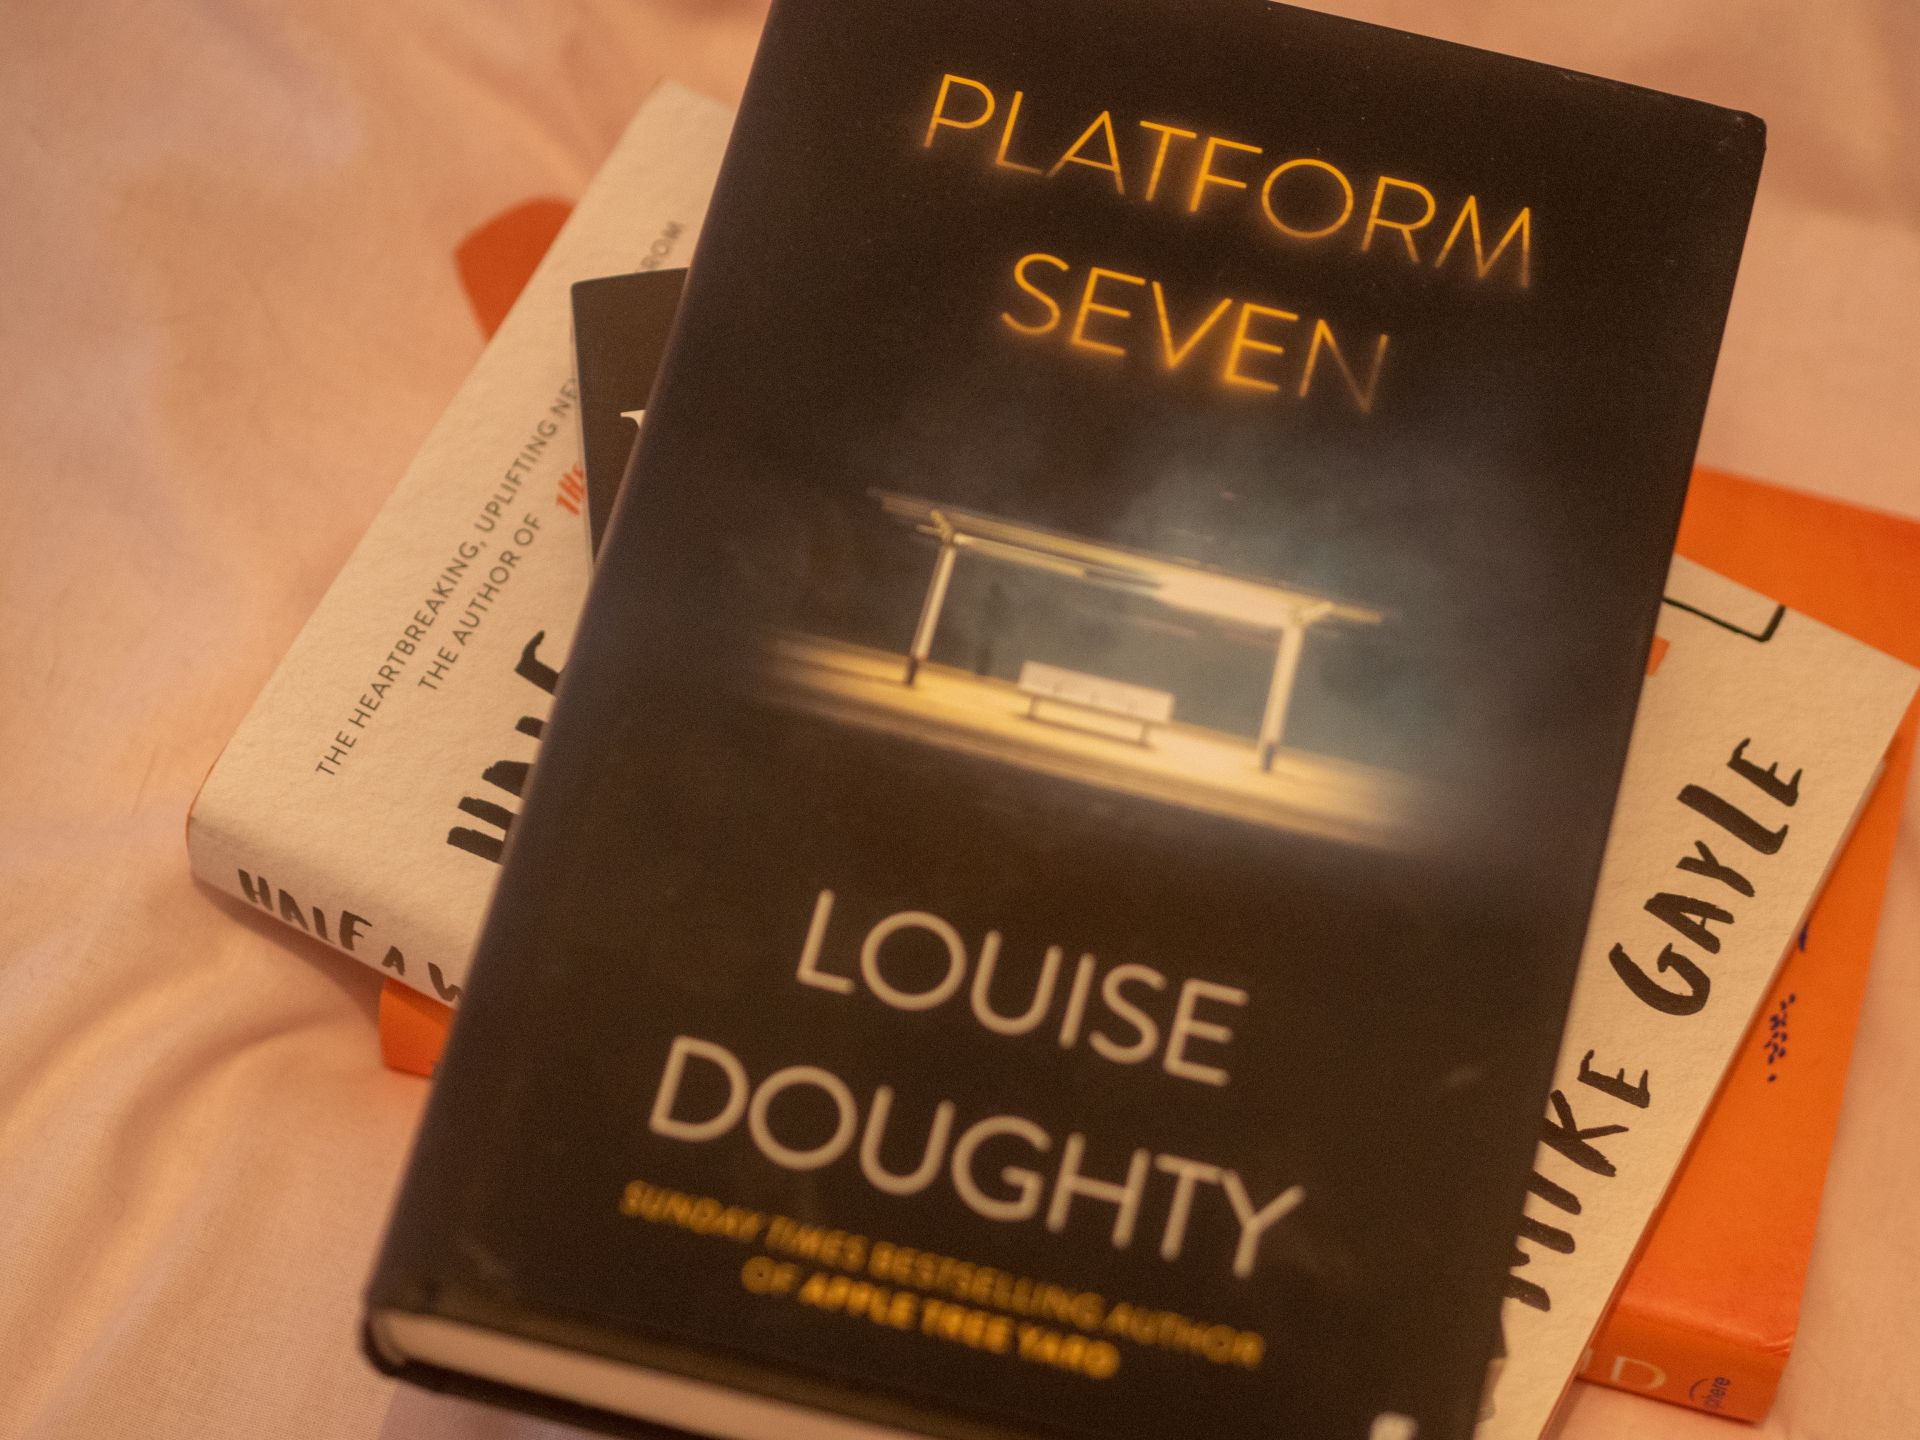 Platform Seven by Louise Doughty | Hollie in Wanderlust | September 2019 Reading List